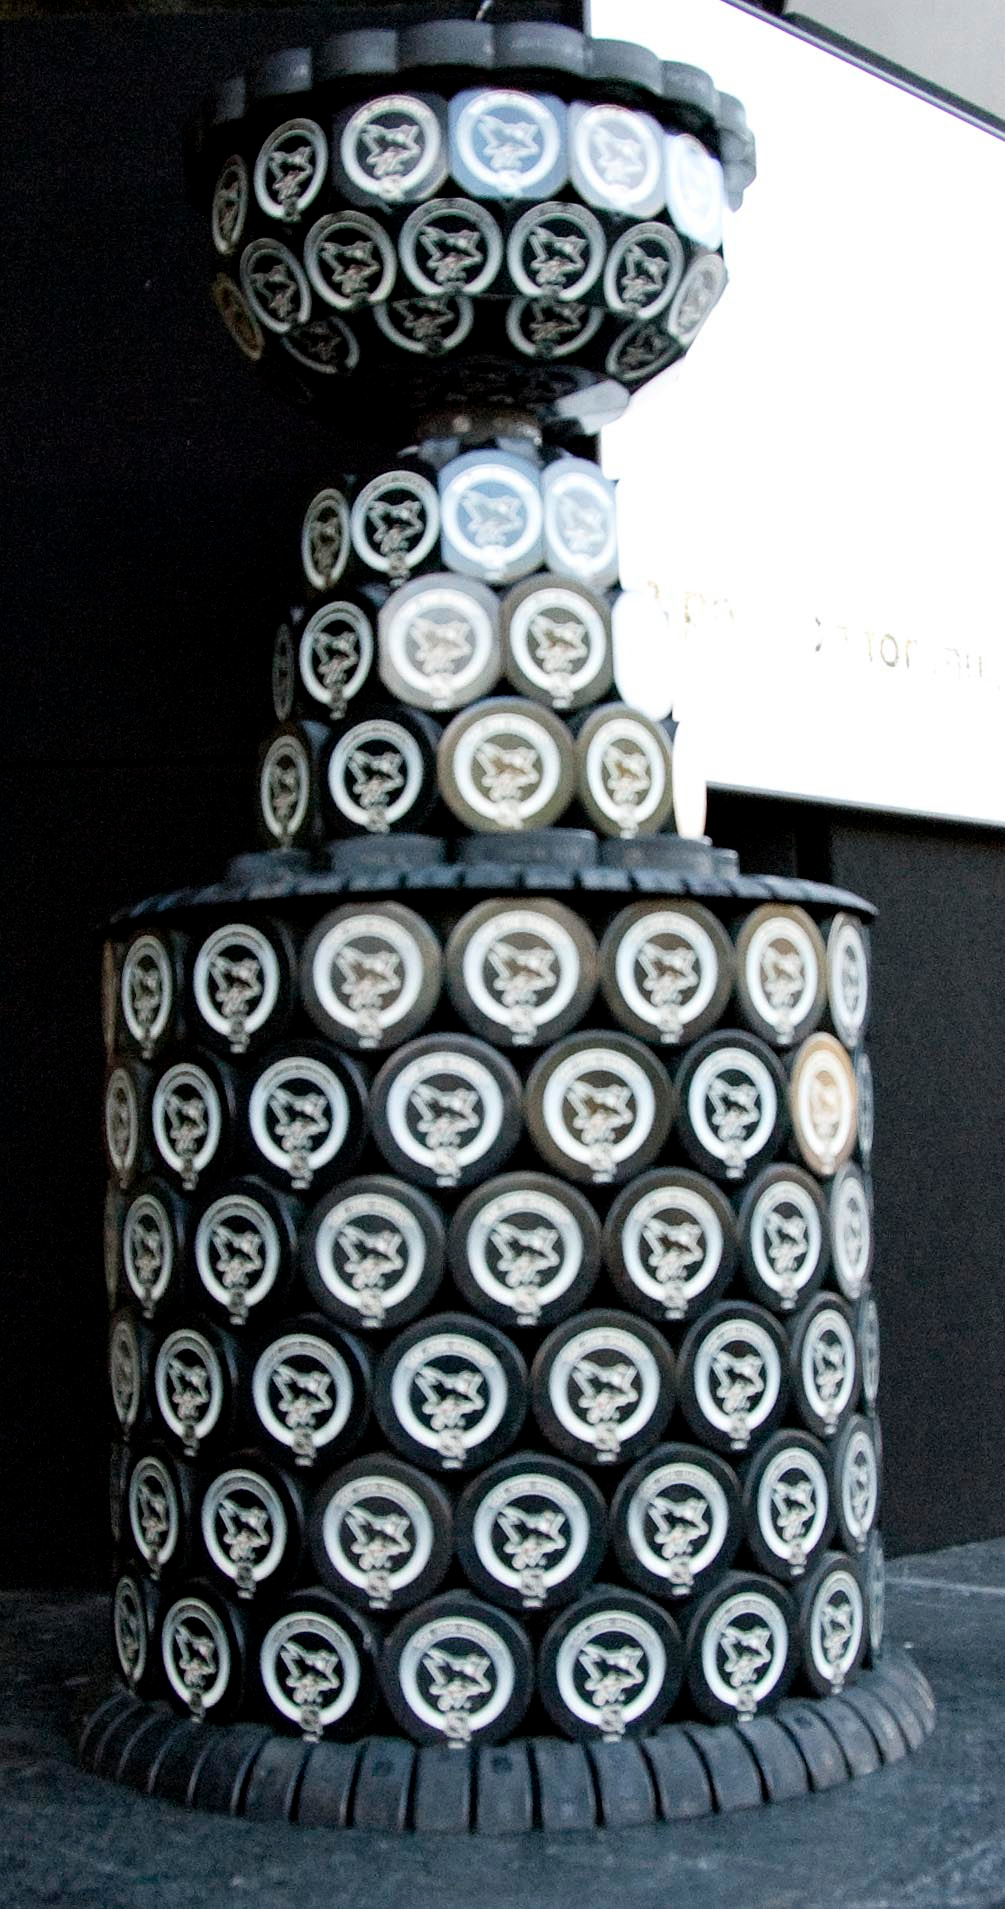 The Stanley Cup of Pucks.